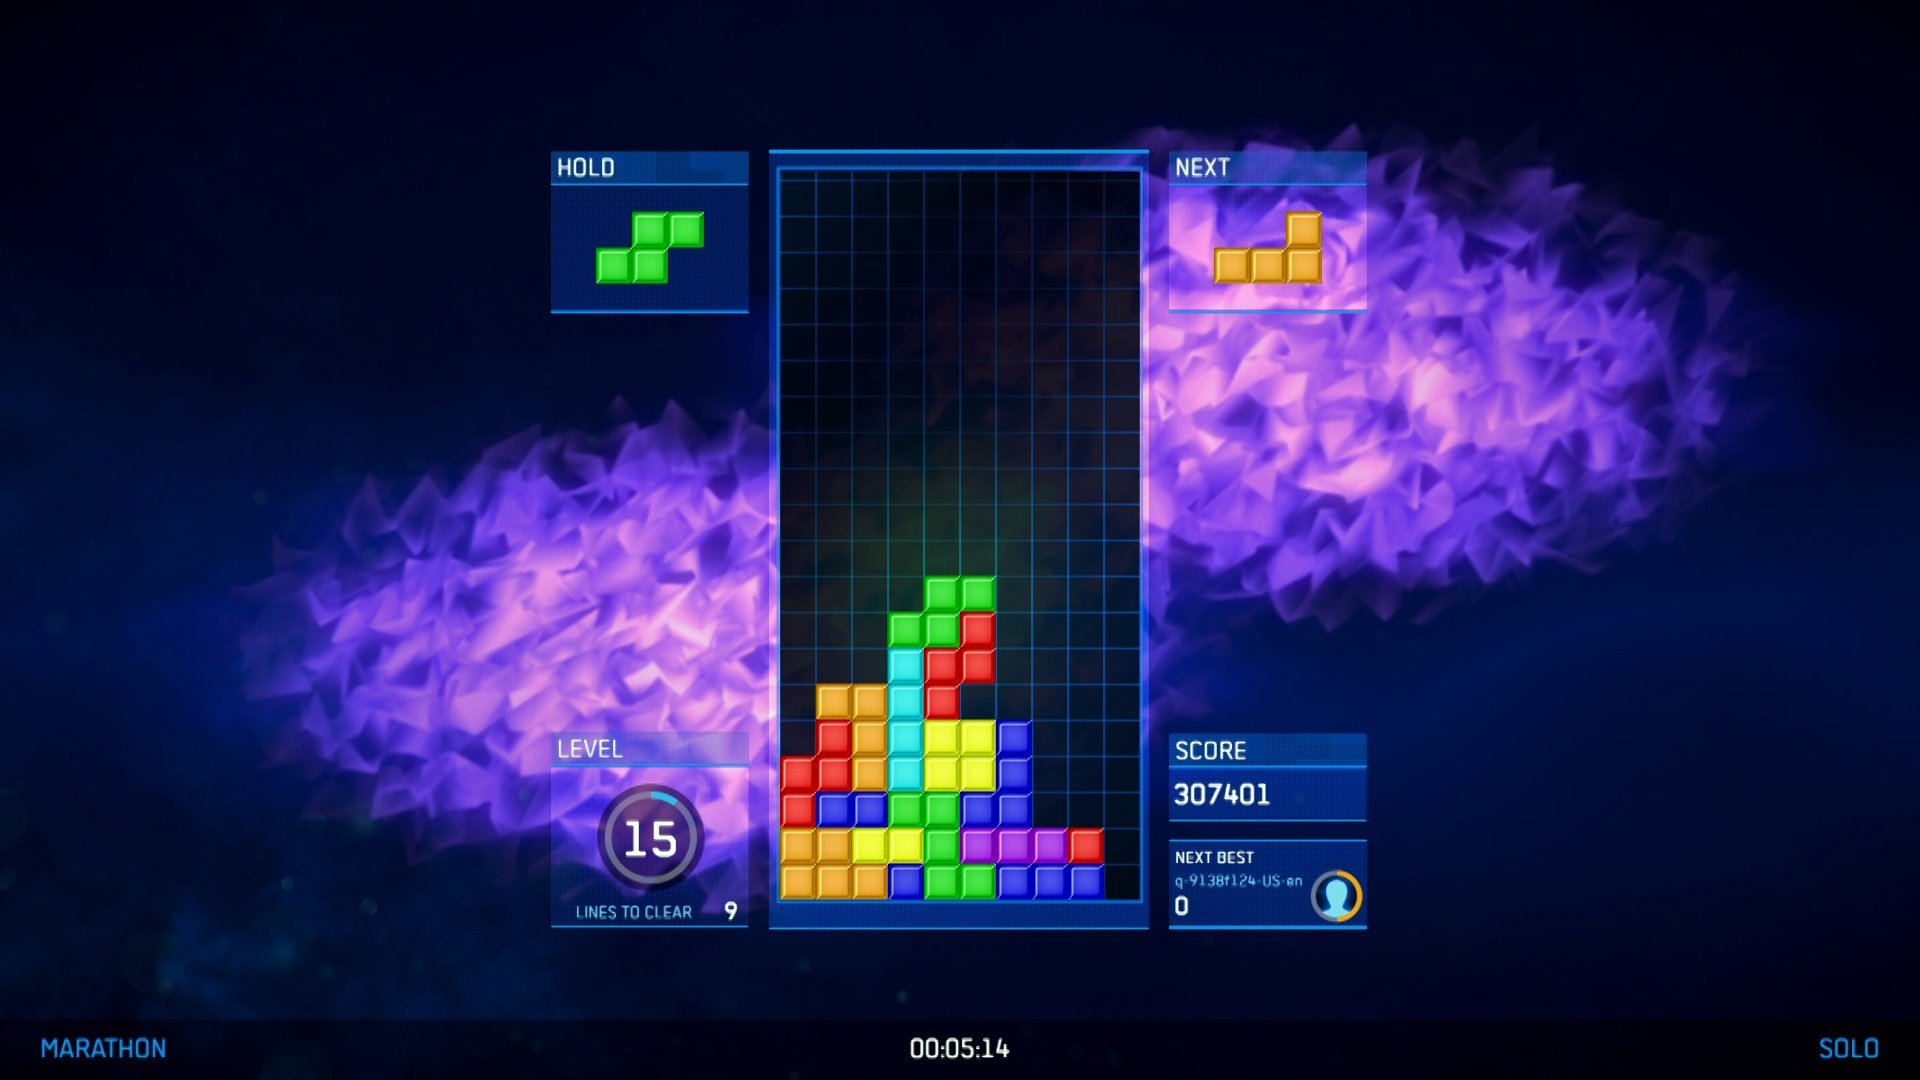 How to Break Out of Your Tetris Gameplay Routine